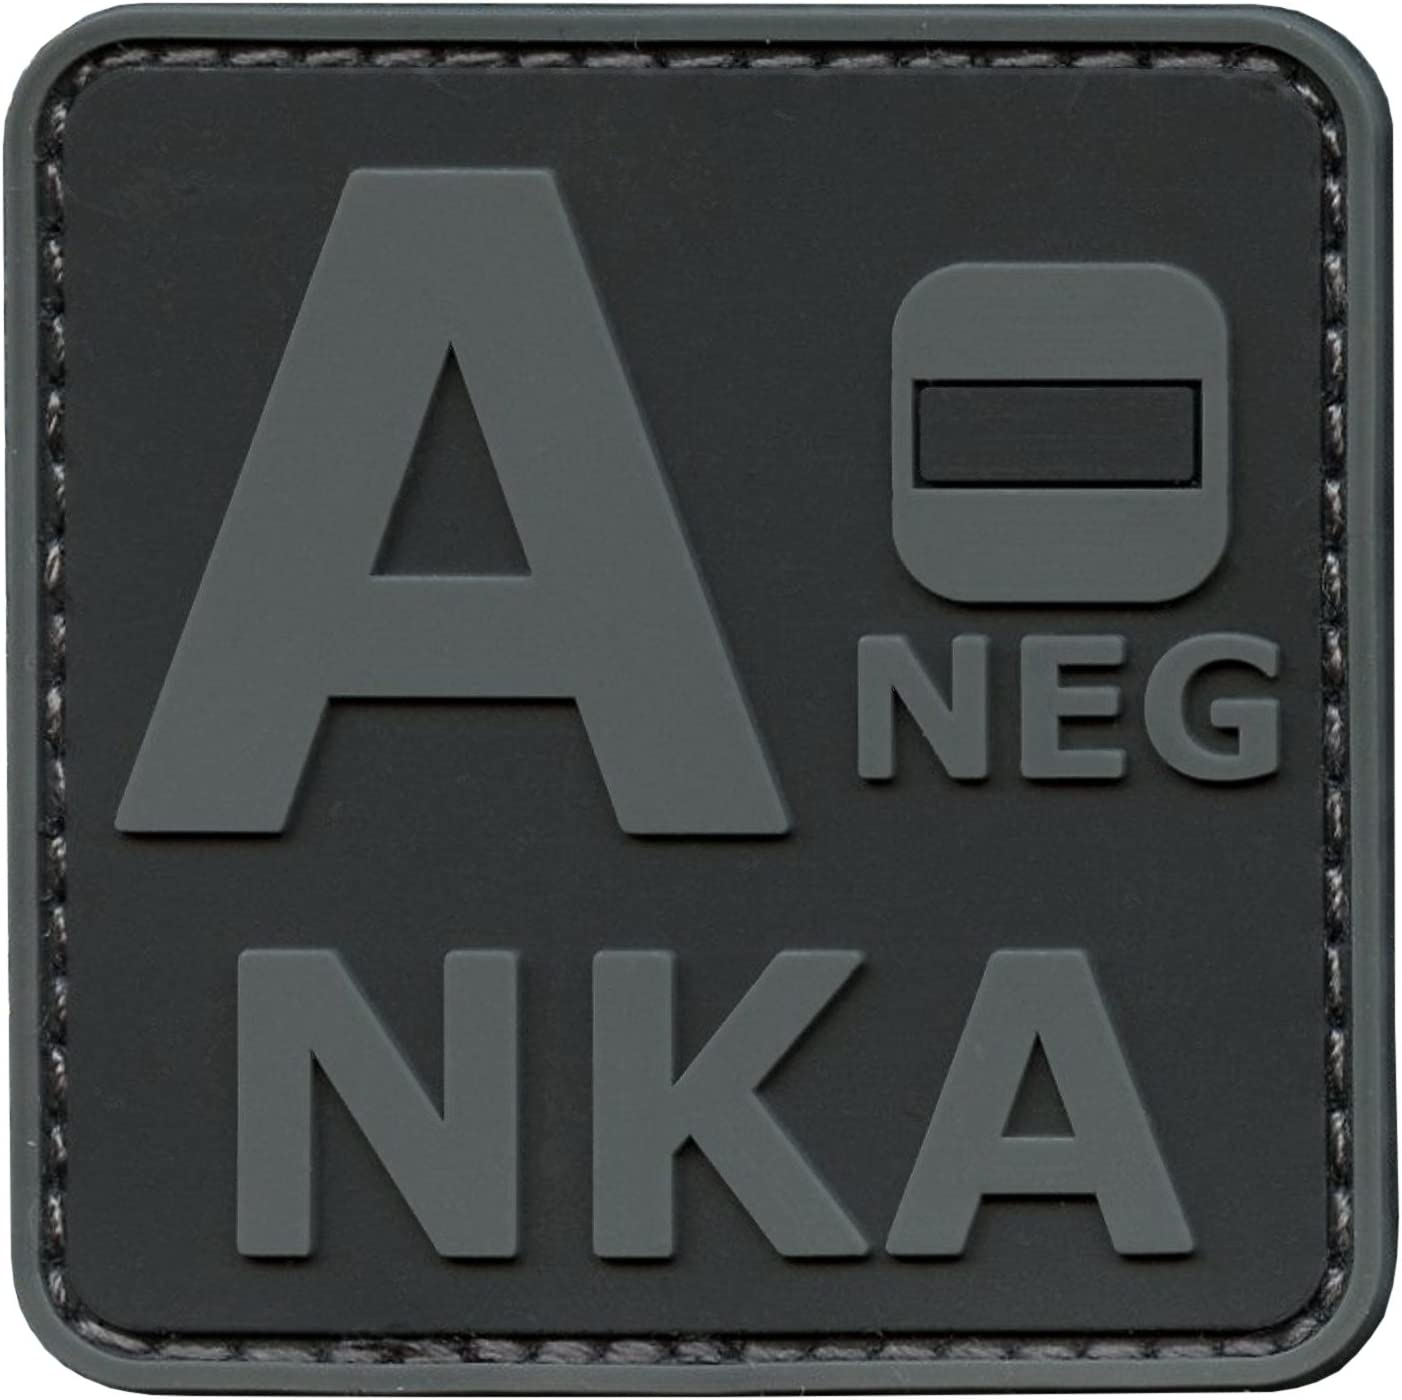 LEGEEON Max 57% OFF Blackout Classic Subdued ANEG A- NKA Known Type Blood Allergi No